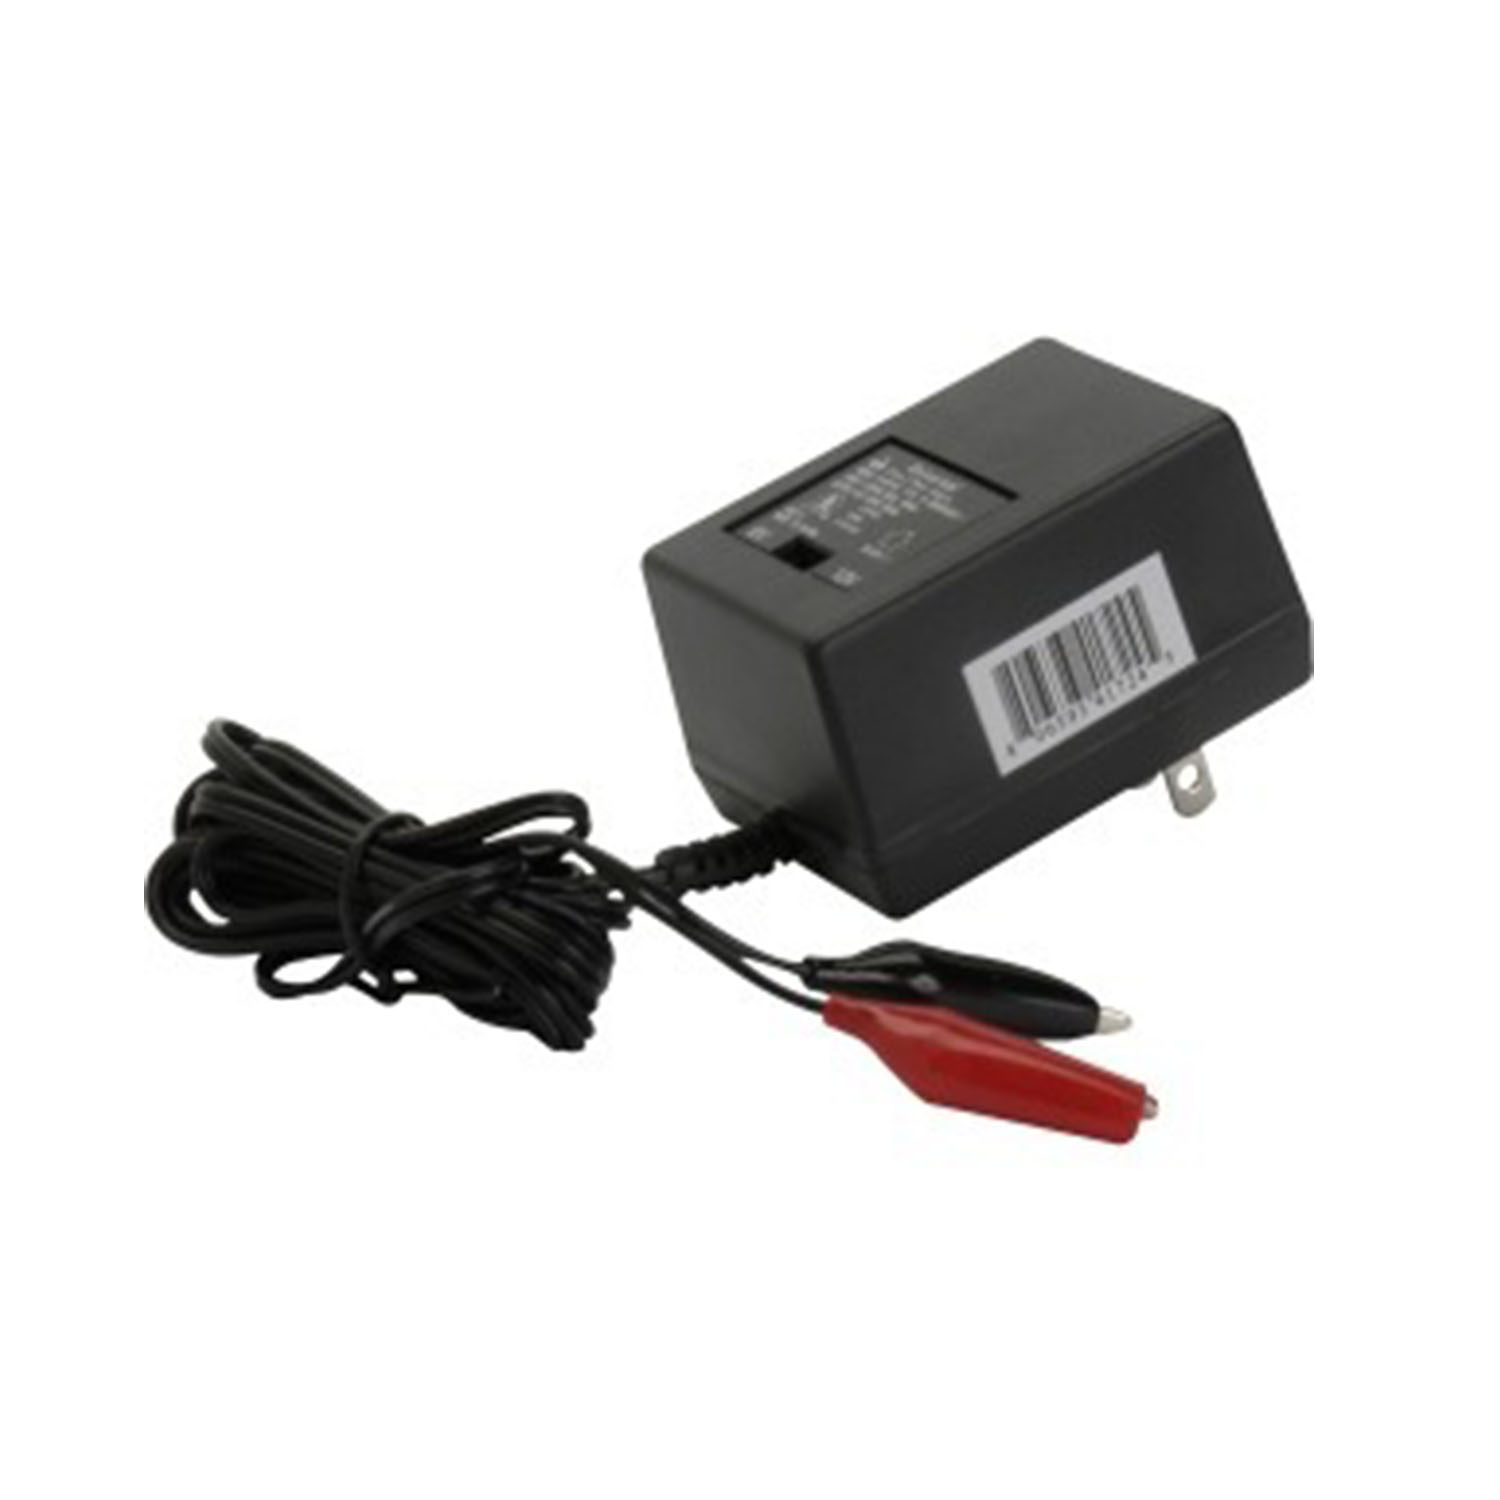 D1724 SLA Battery Charger 6V/12V  With Alligator Clips